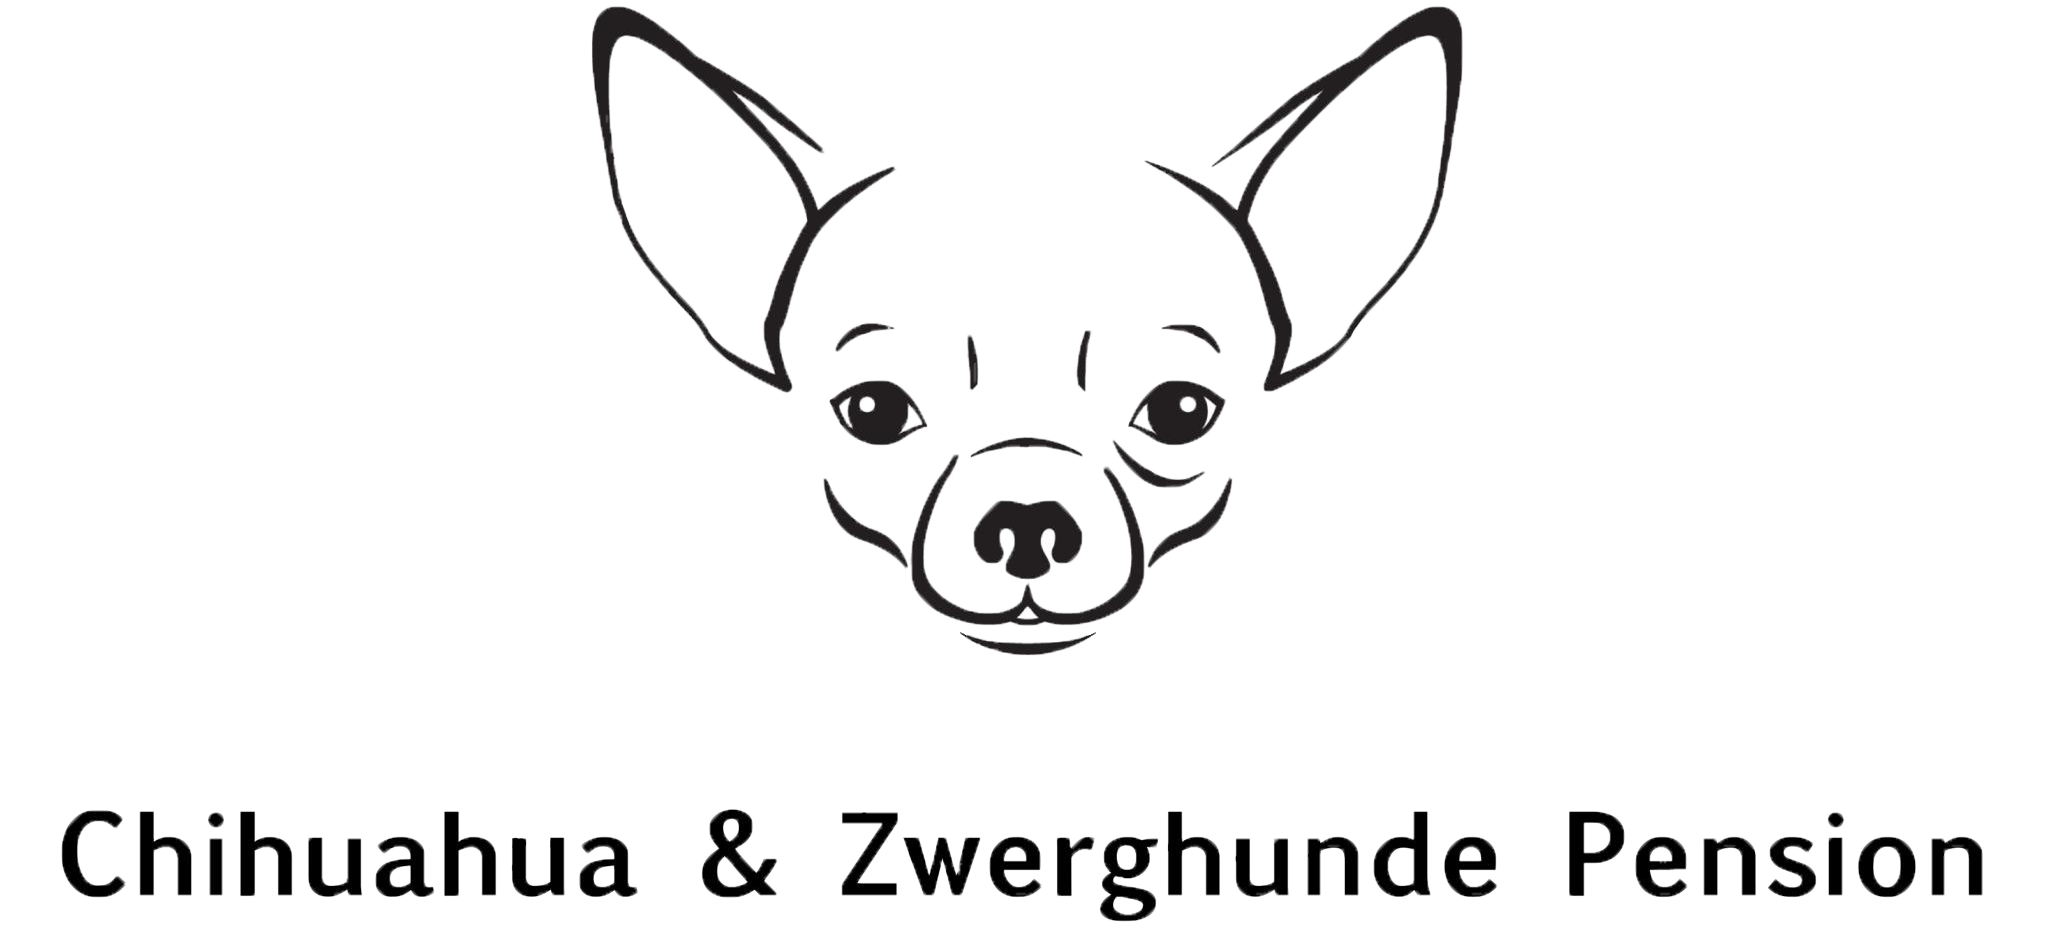 Chihuahua & Zwerghunde Pension